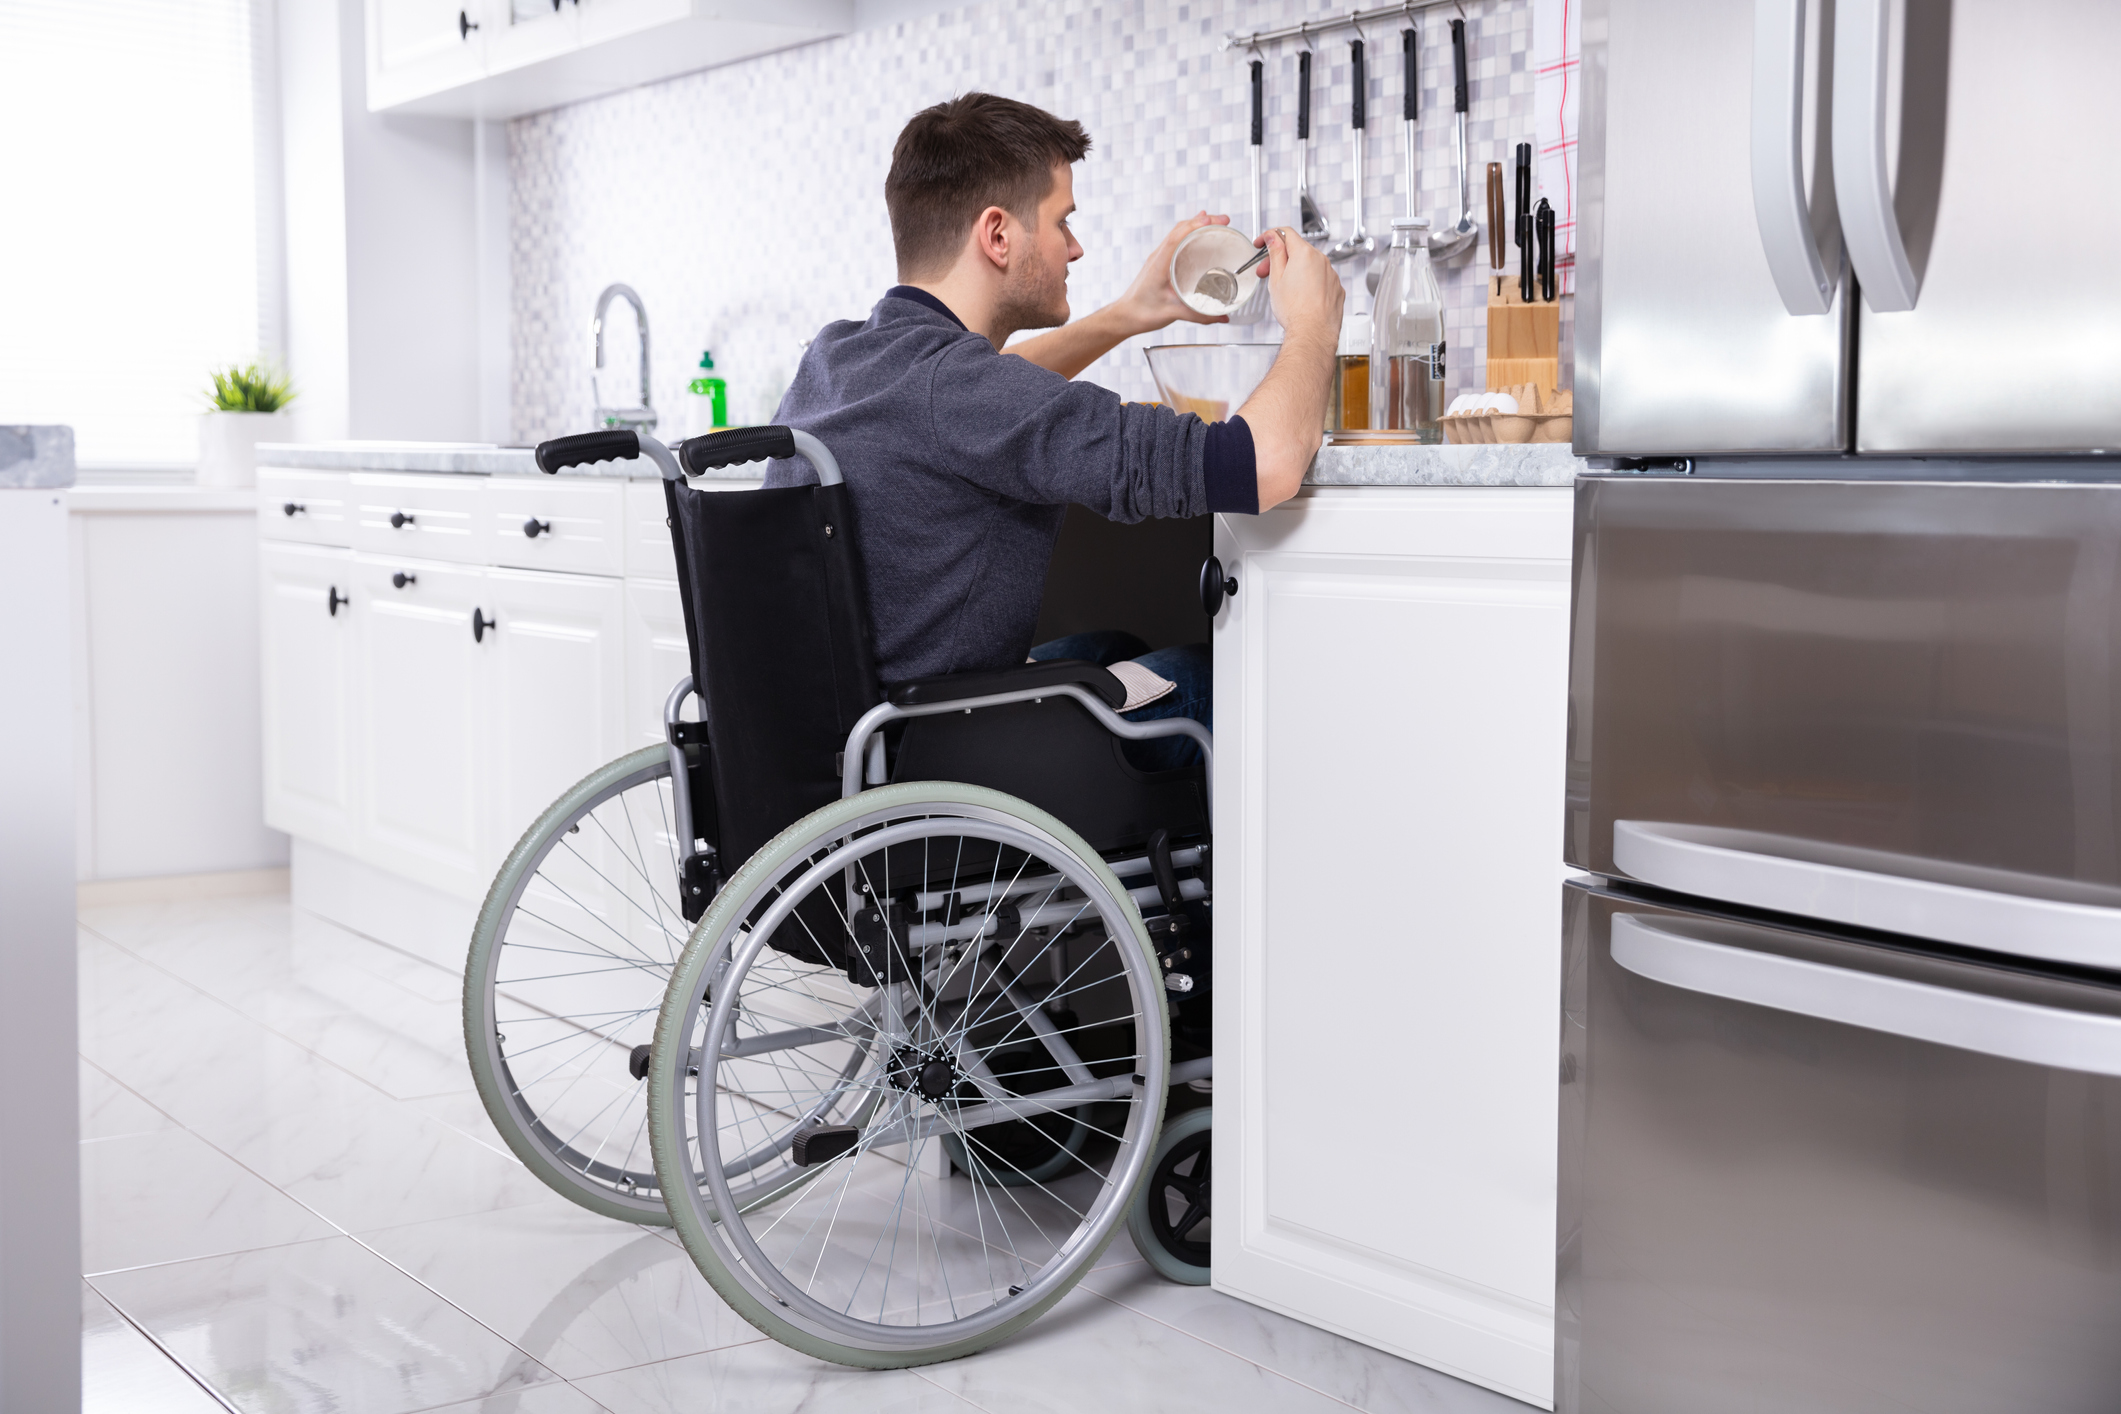 Disabled Man Preparing Food In Kitchen